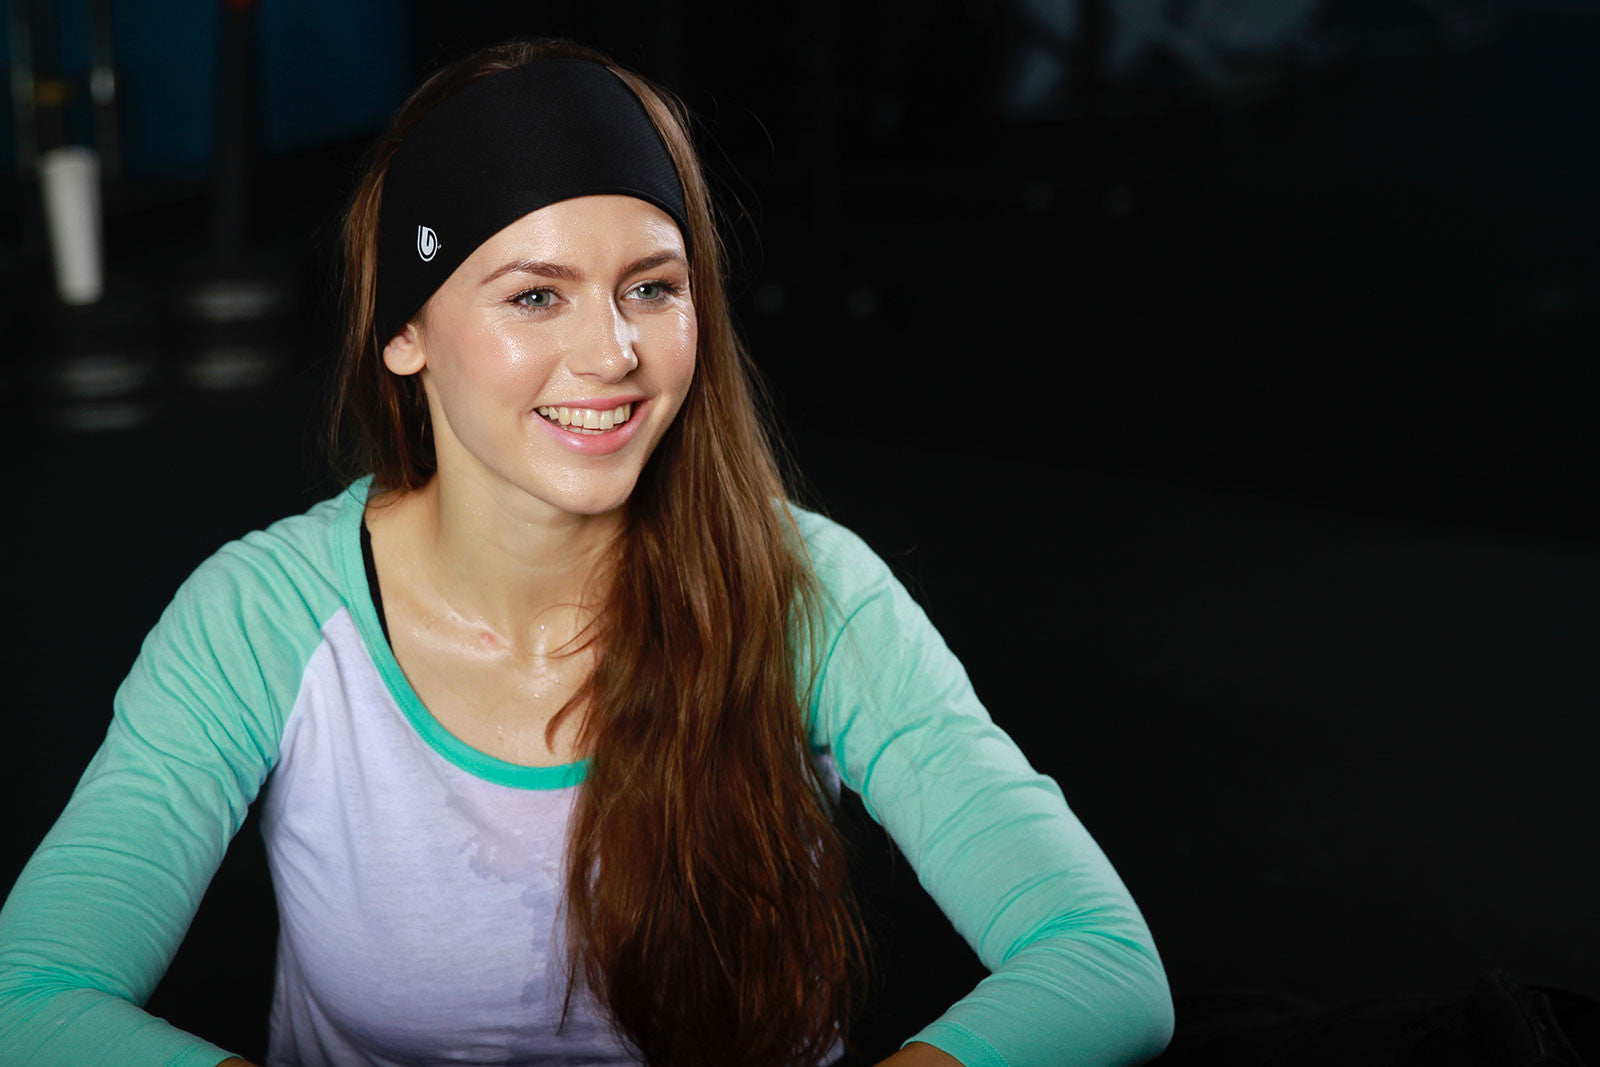 Gymwrap moisture-wicking headbands